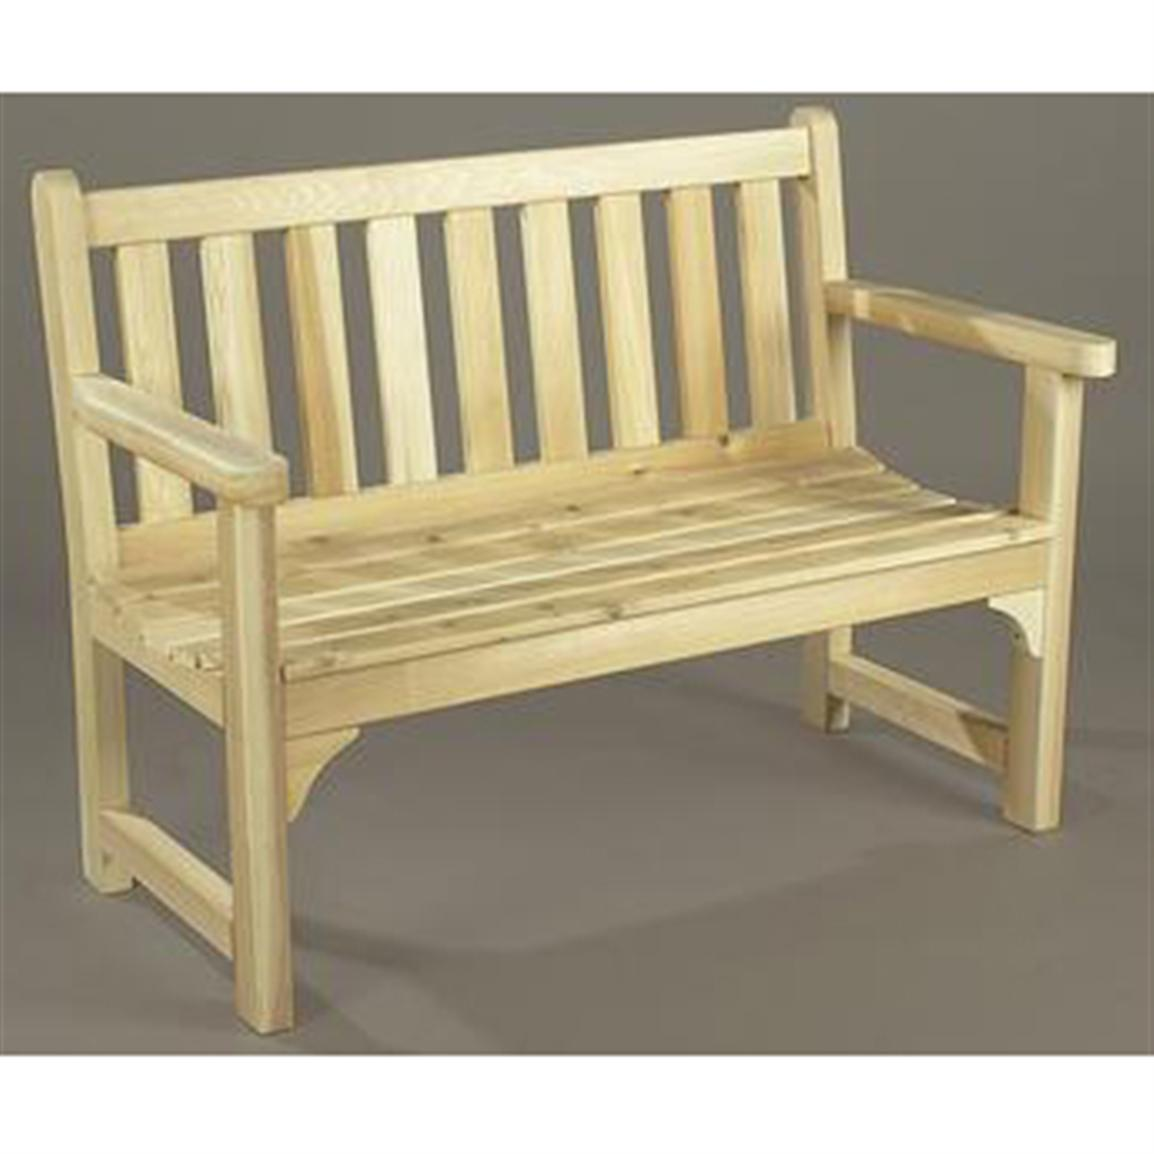 Rustic natural cedar unfinished english garden settee for Rustic outdoor furniture